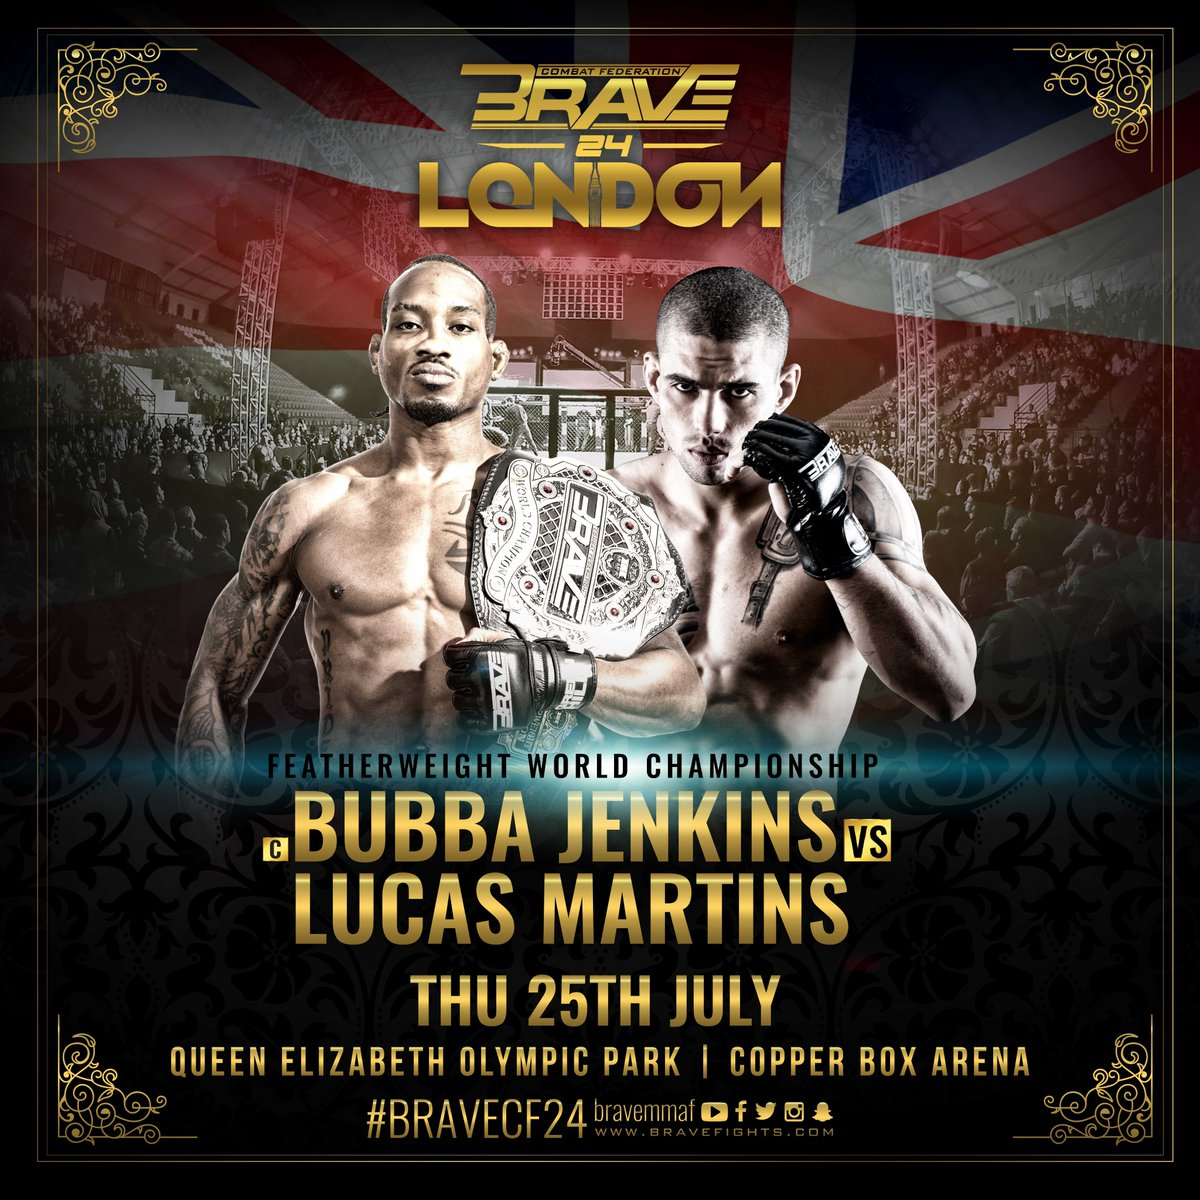 A high-class fight night calls for a high-class main event! We've got a headliner for BRAVE 24: London. Featherweight world champion @BubbaJenkinsMMA makes his first title defense against former Lightweight kingpin @LucasMineiroMMA at the main event of the evening! #BRAVECF24